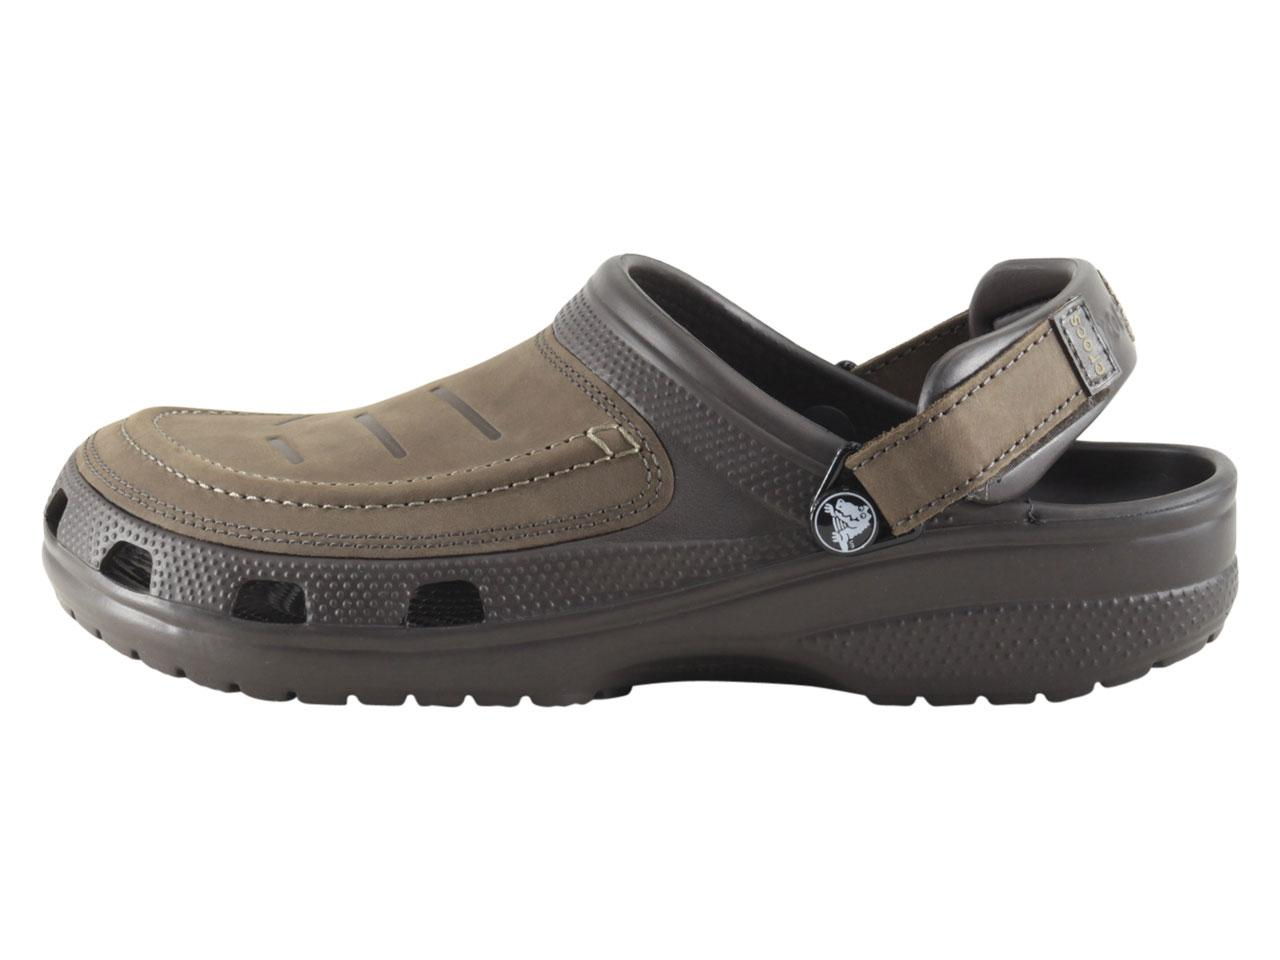 15e923f32d3e2 Crocs Men s Yukon Vista Clogs Sandals Shoes by Crocs. 1234567